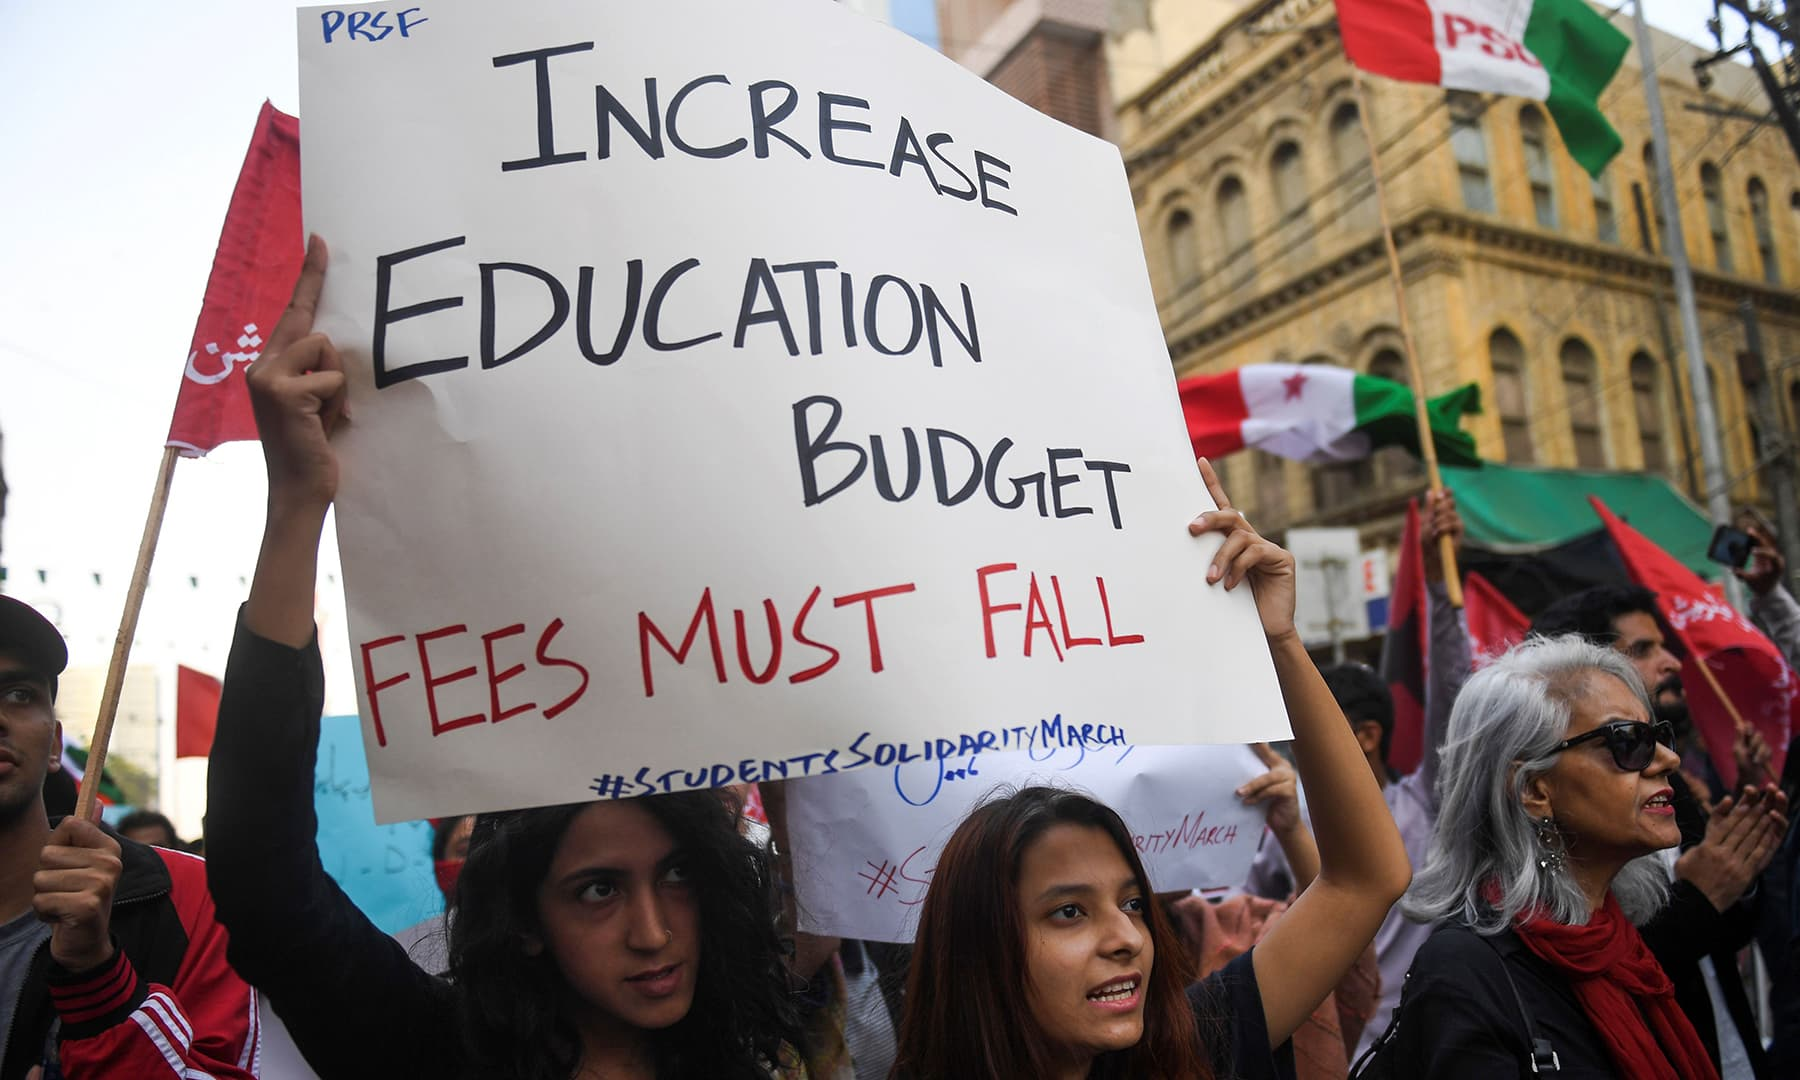 Protesters demand education fee cuts and better education facilities, in Karachi on Friday. — AFP